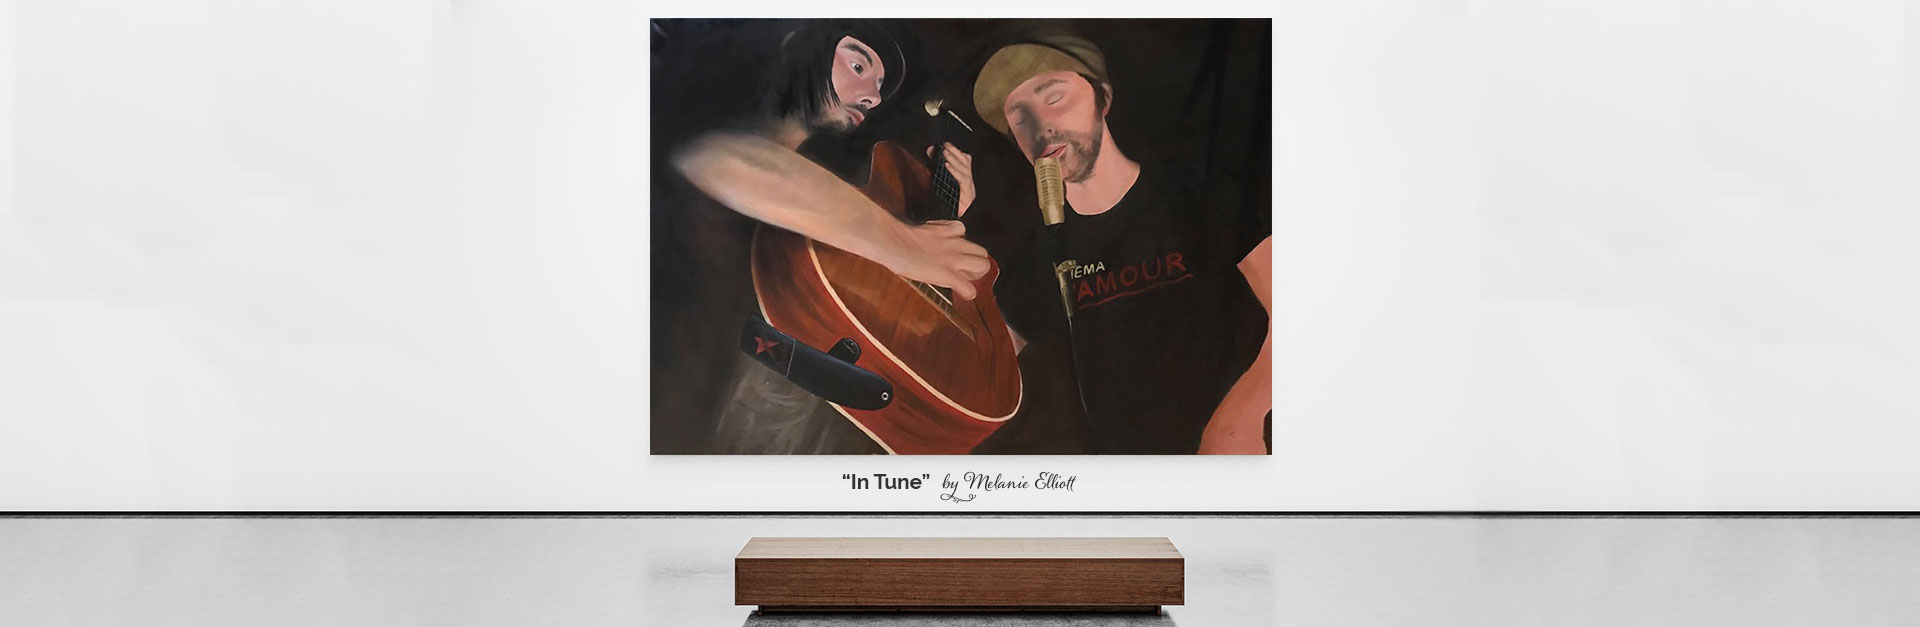 In Tune by Melanie Elliott